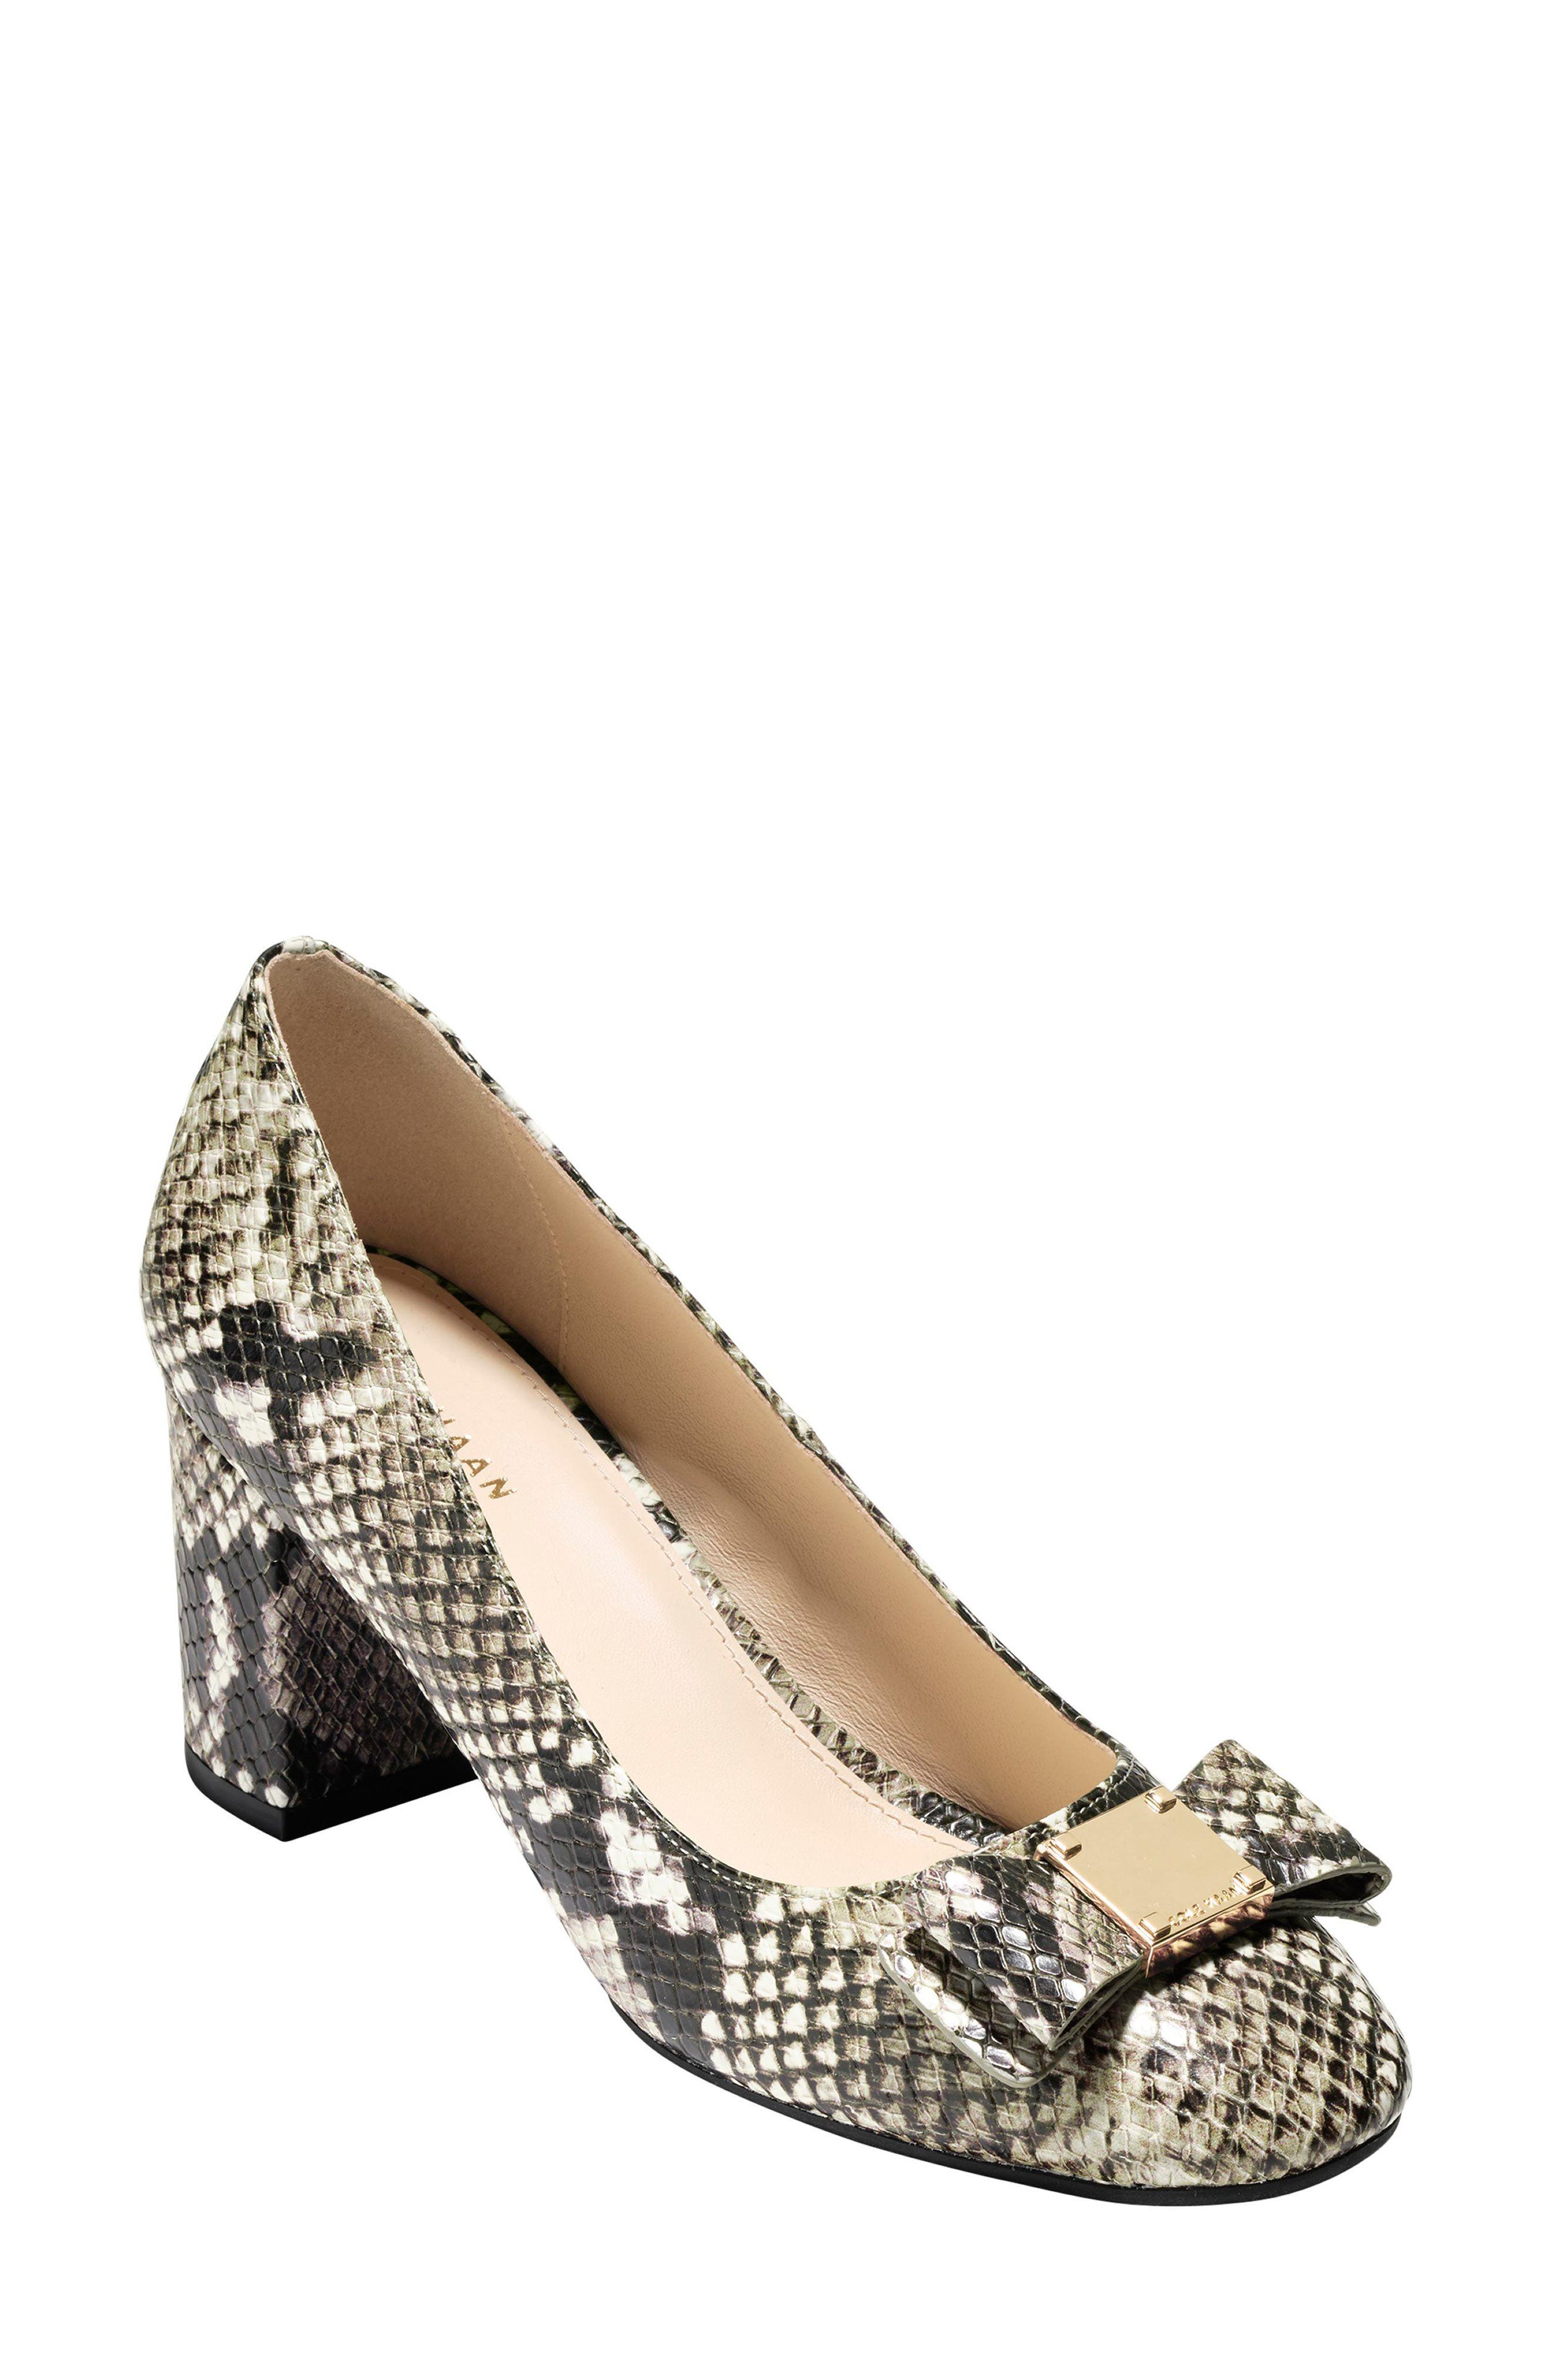 Tali Bow Pump,                             Main thumbnail 1, color,                             Beige Snake Print Leather